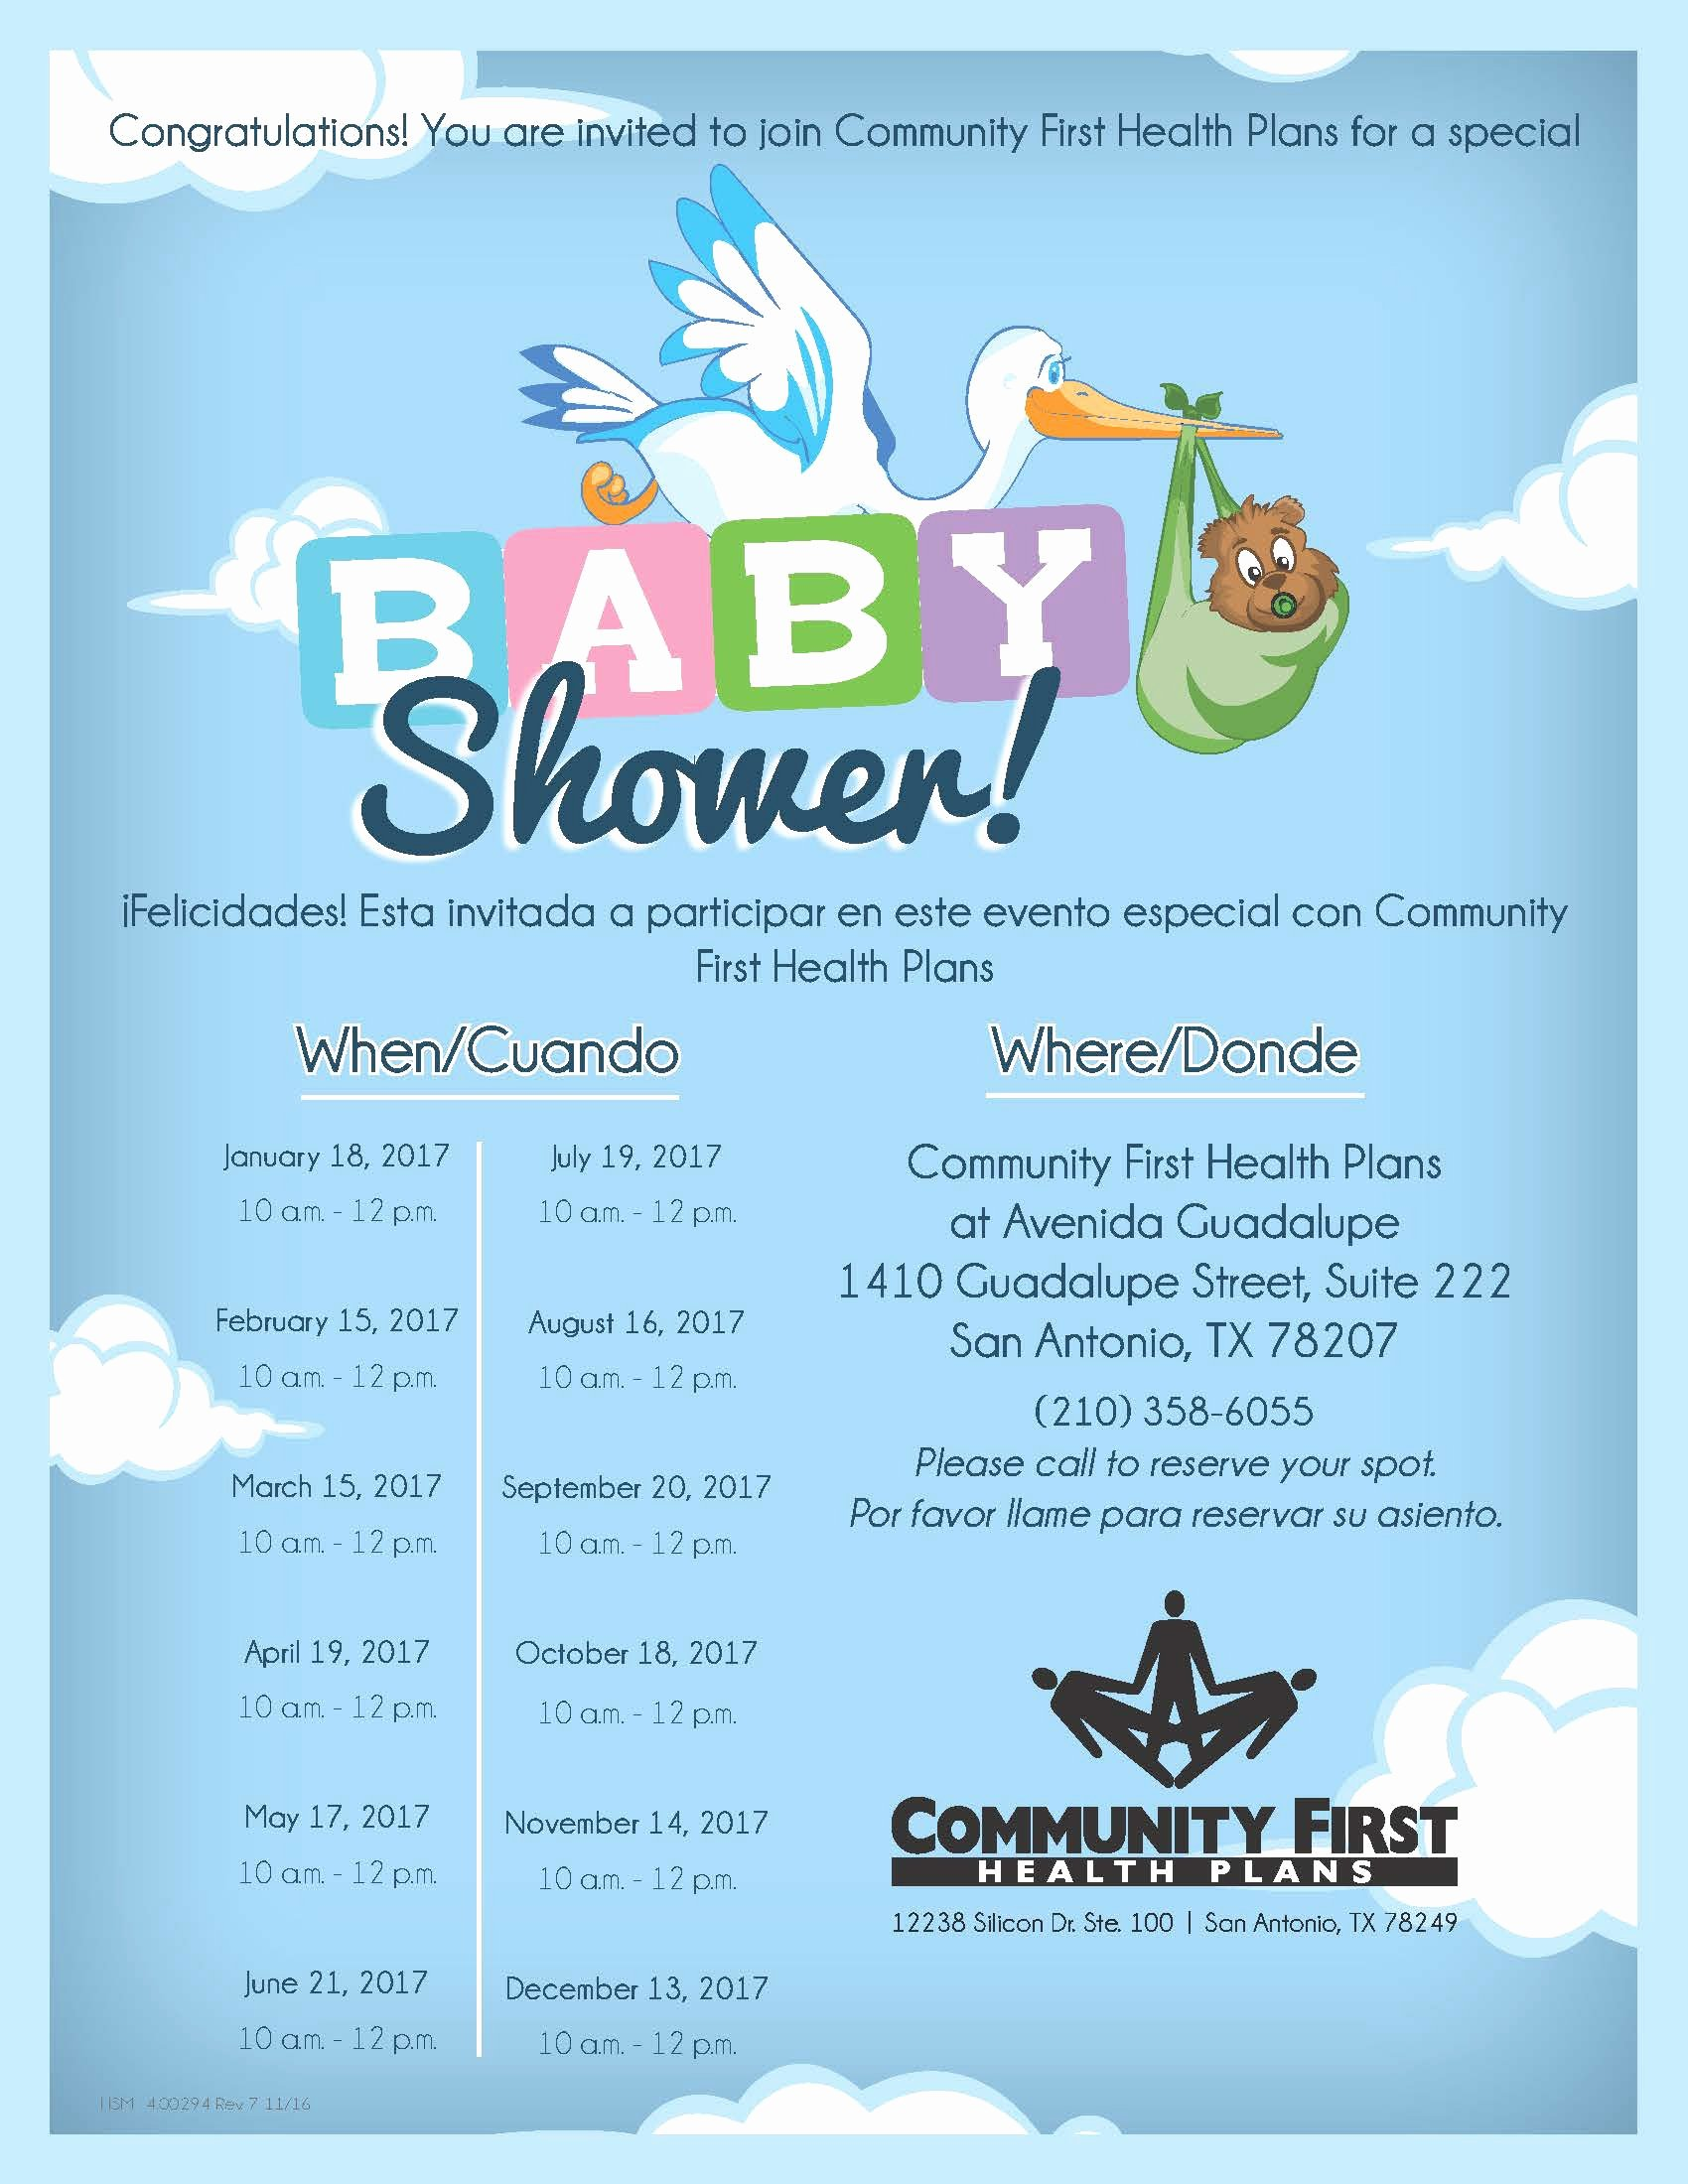 Baby Shower Flyer Ideas Unique events Munity First Health Plan